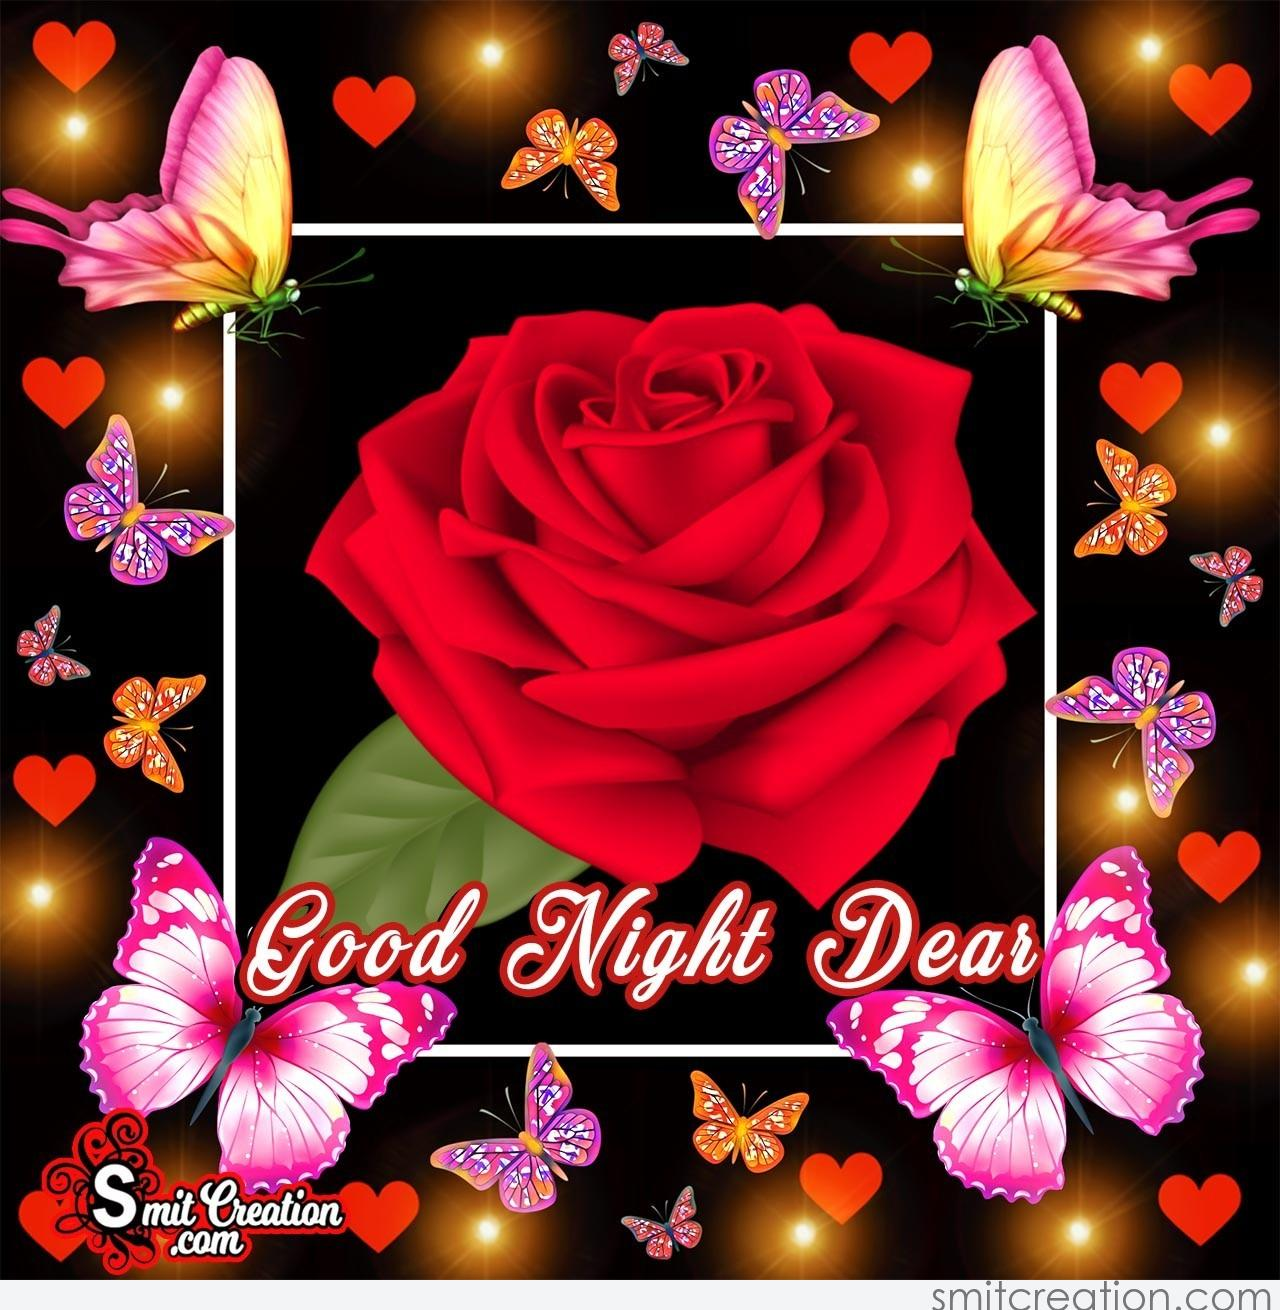 Good Night Flower Pictures And Graphics Smitcreationcom